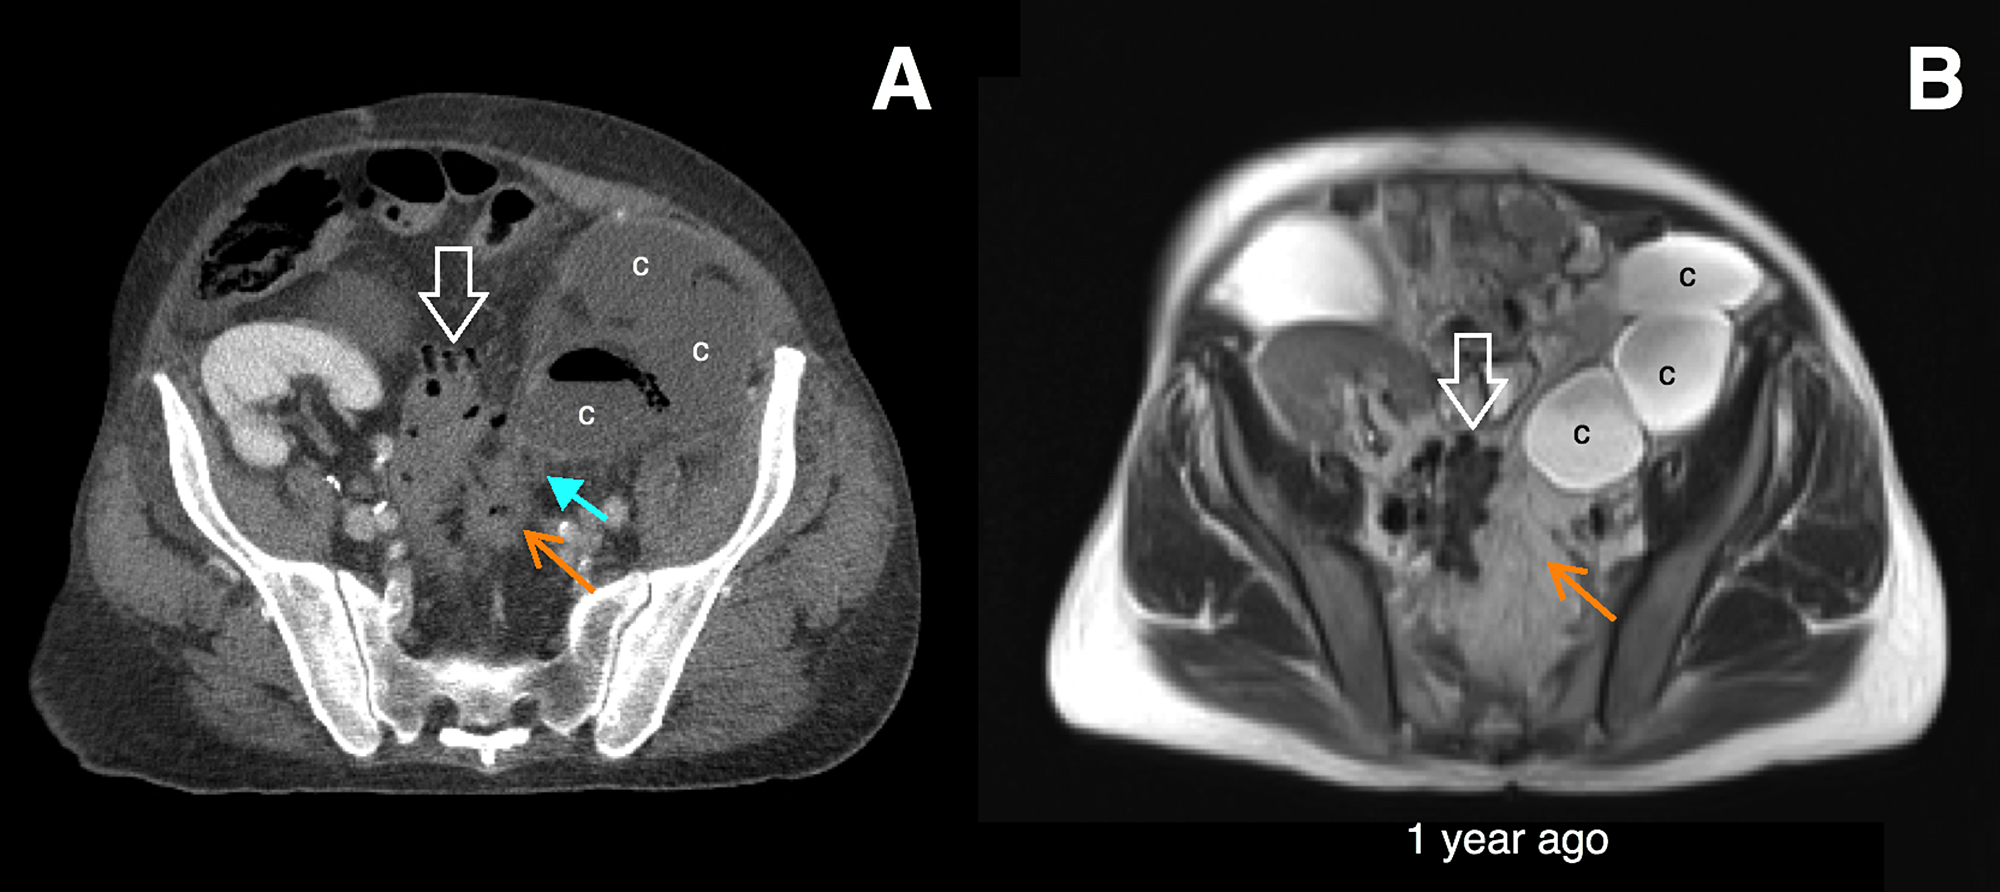 Cureus Rupture Of An Infected Renal Cyst Secondary To A Renocolic Fistula In Autosomal Dominant Polycystic Kidney Disease